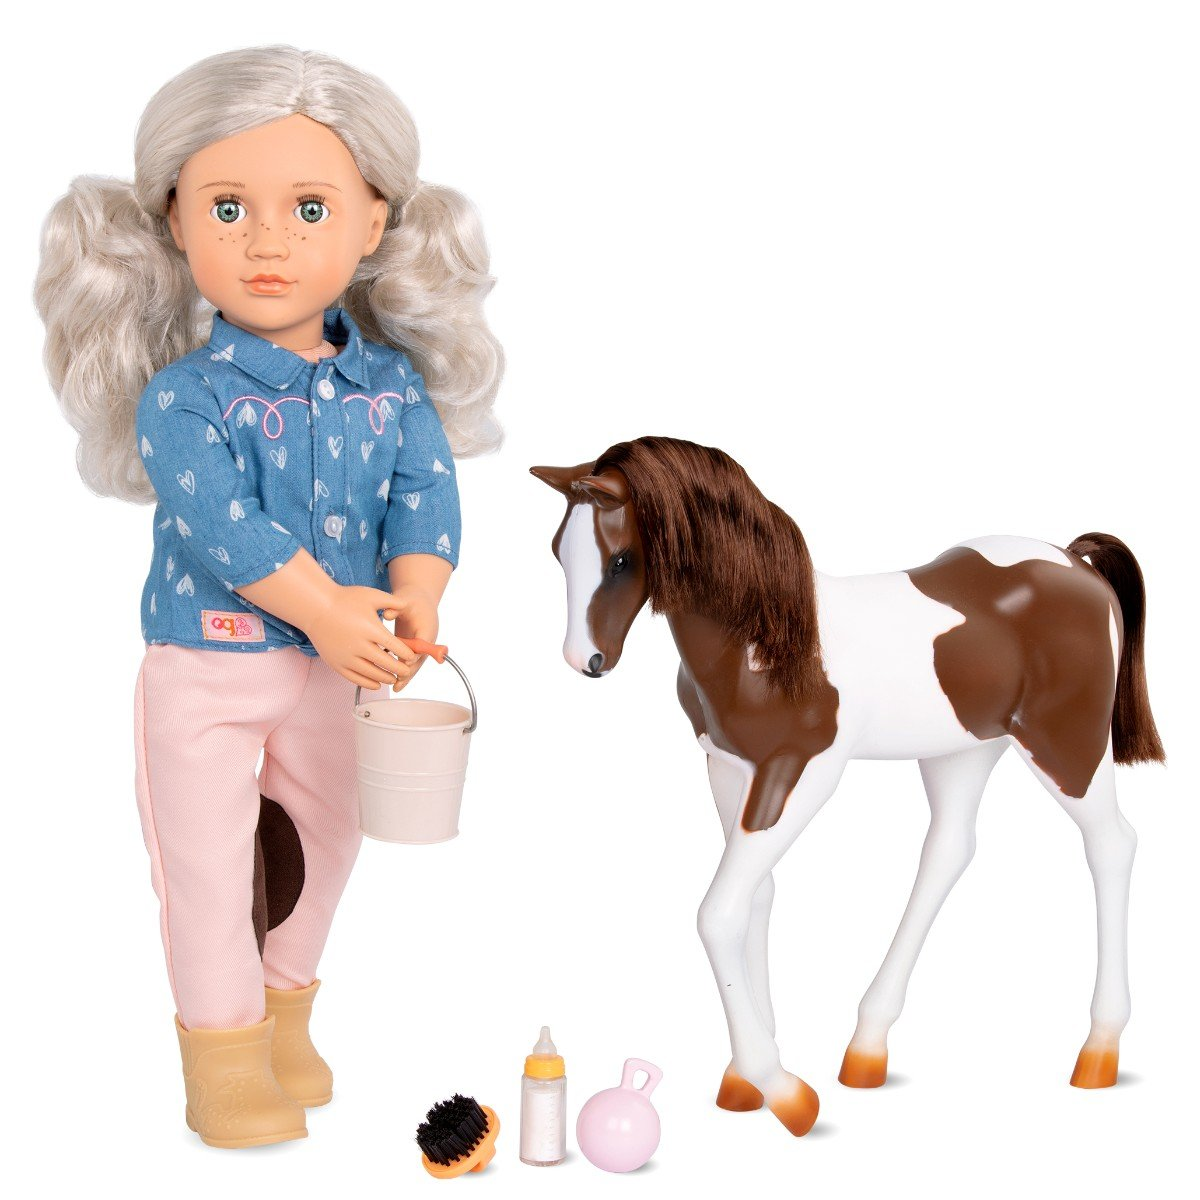 Our Generation - Yanara doll with Pet foal (731295)